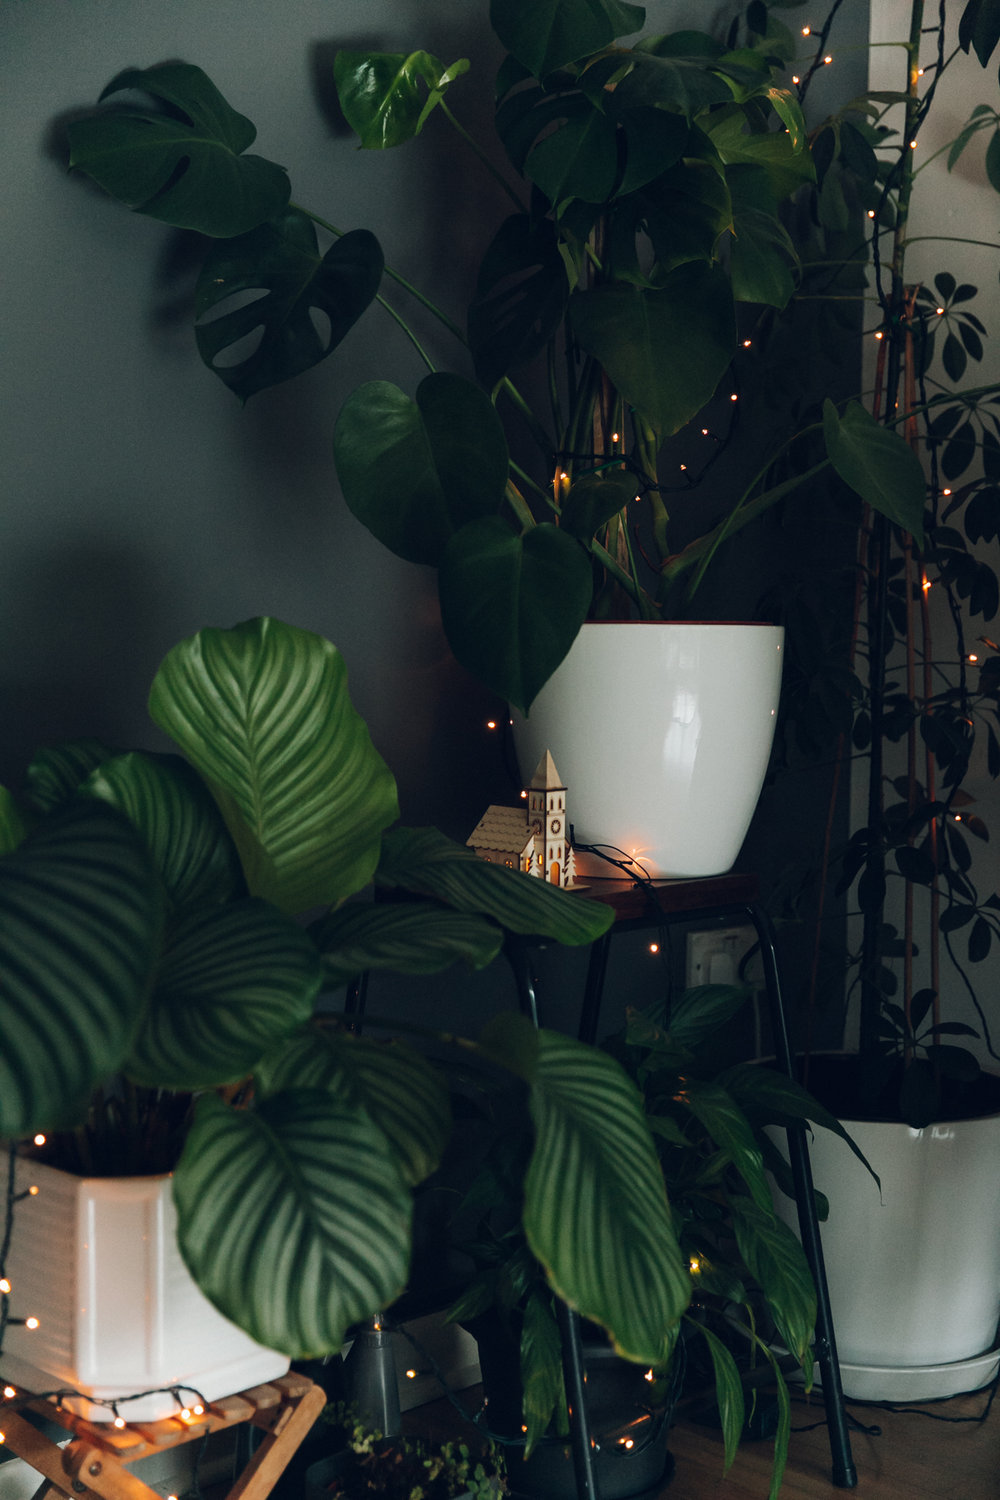 Houseplant Christmas decorations.